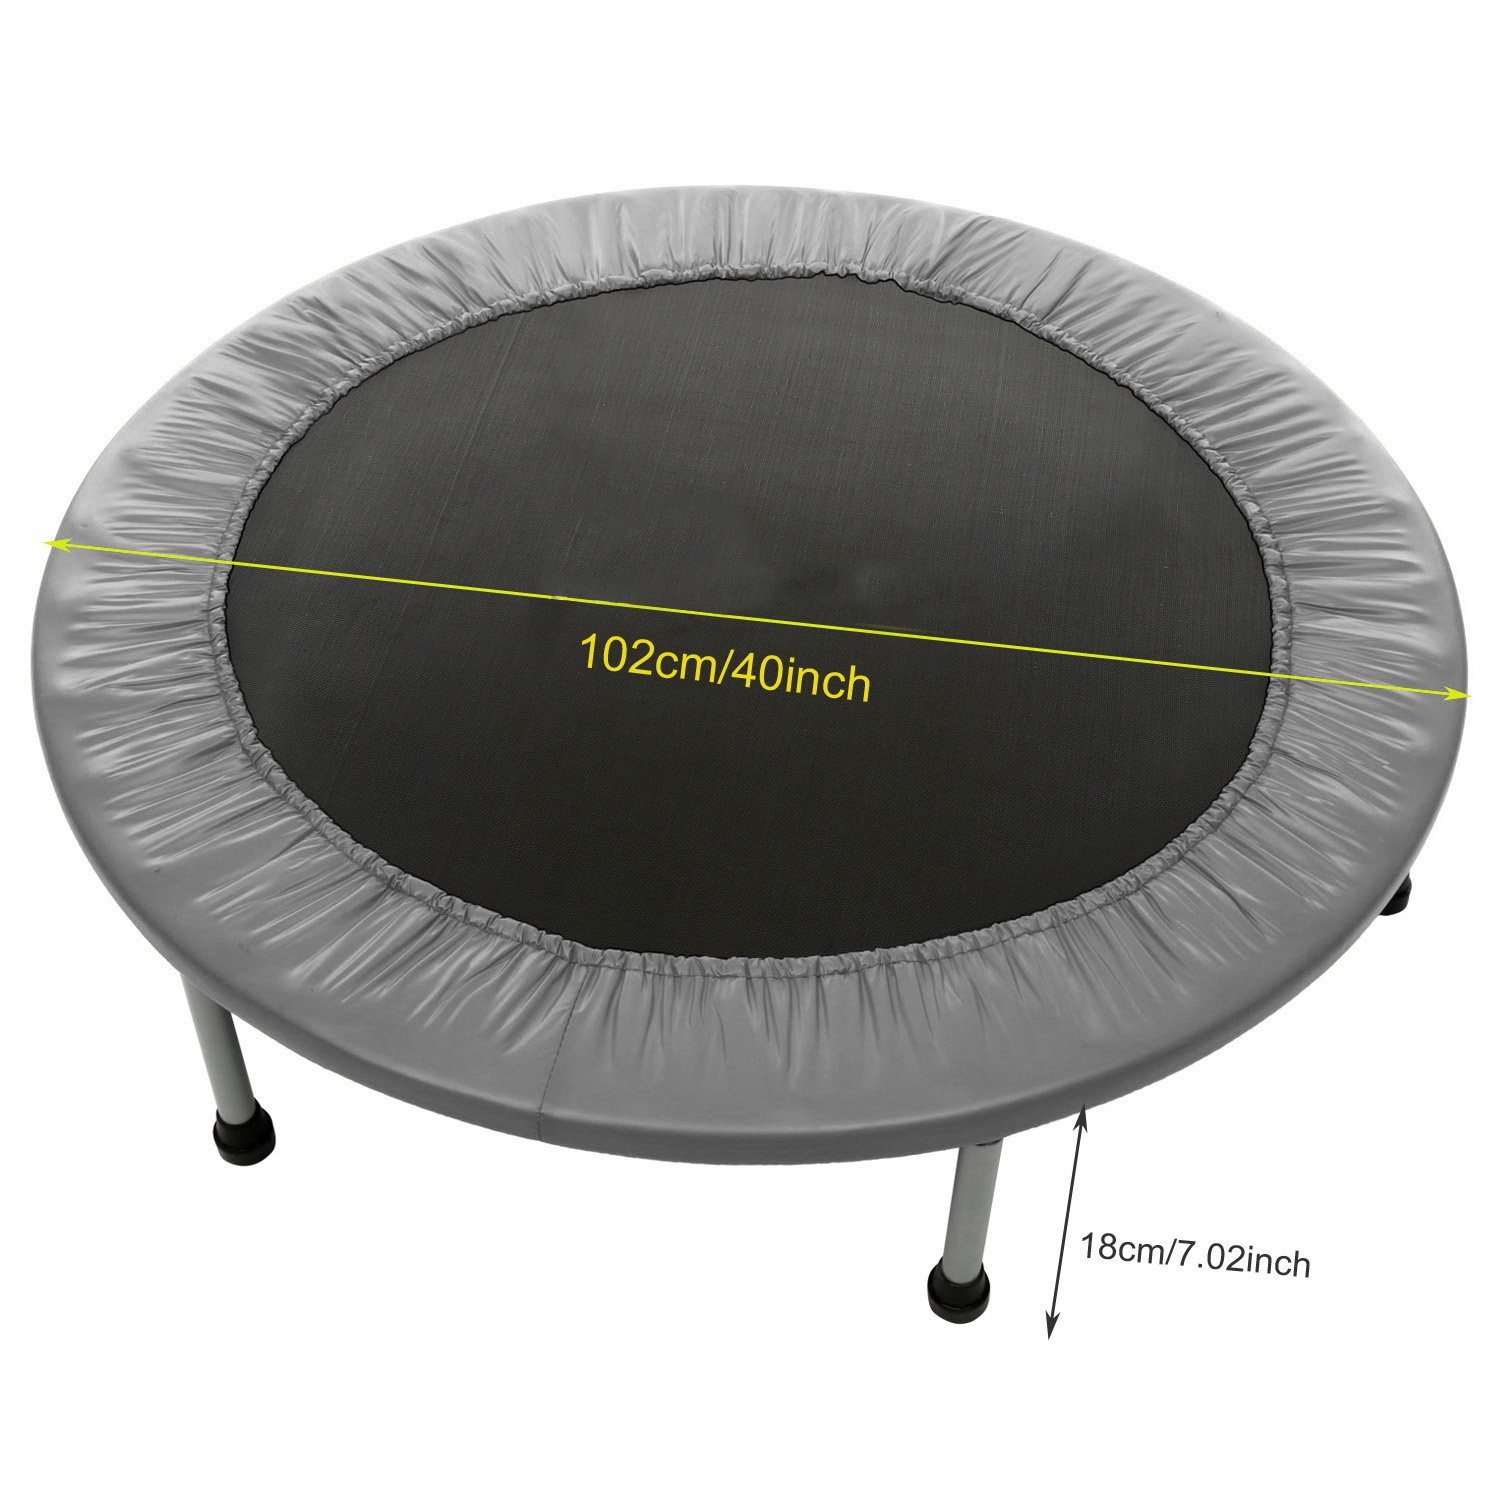 Balanu 40 Inch Mini Exercise Trampoline for Adults or Kids - Indoor Fitness Rebounder Trampoline with Safety Pad | Max. Load 220LBS (Gray-40In-Foldable Once) by Balanu